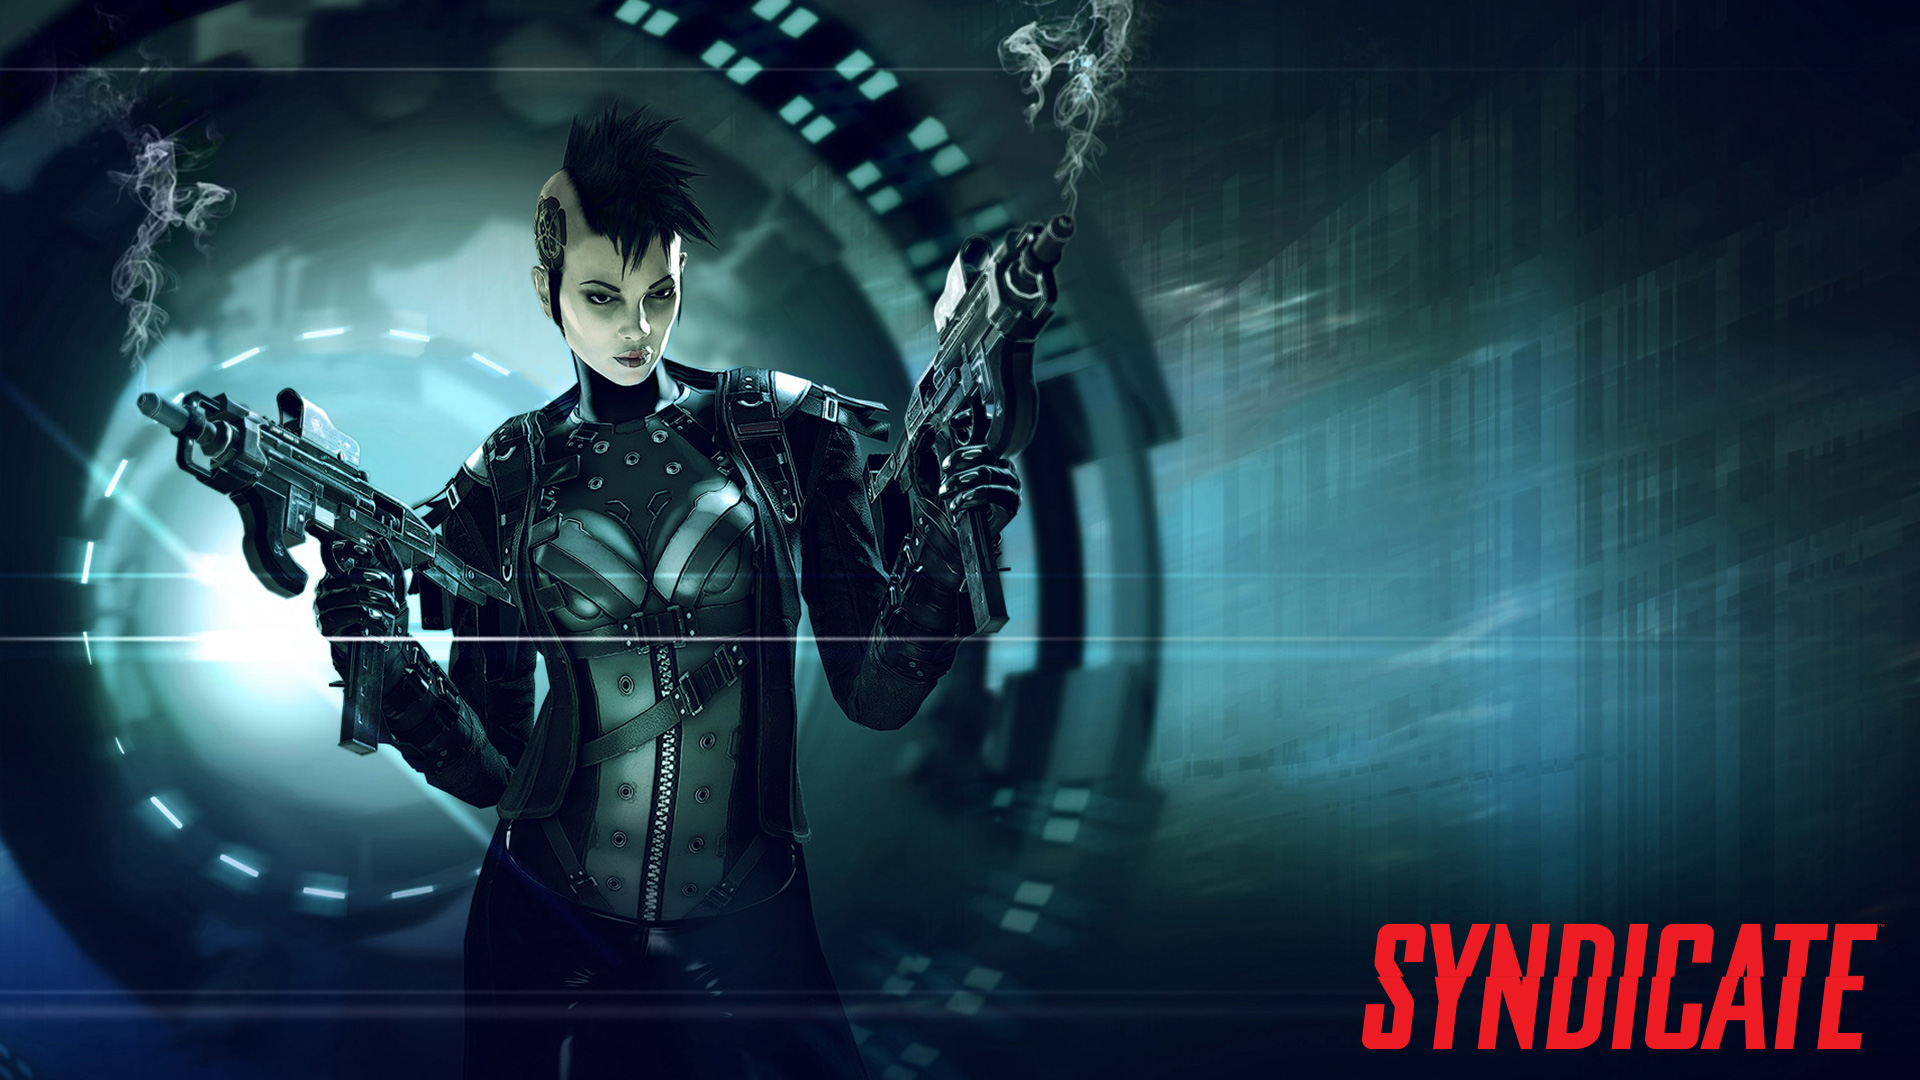 Free Syndicate Wallpaper in 1920x1080